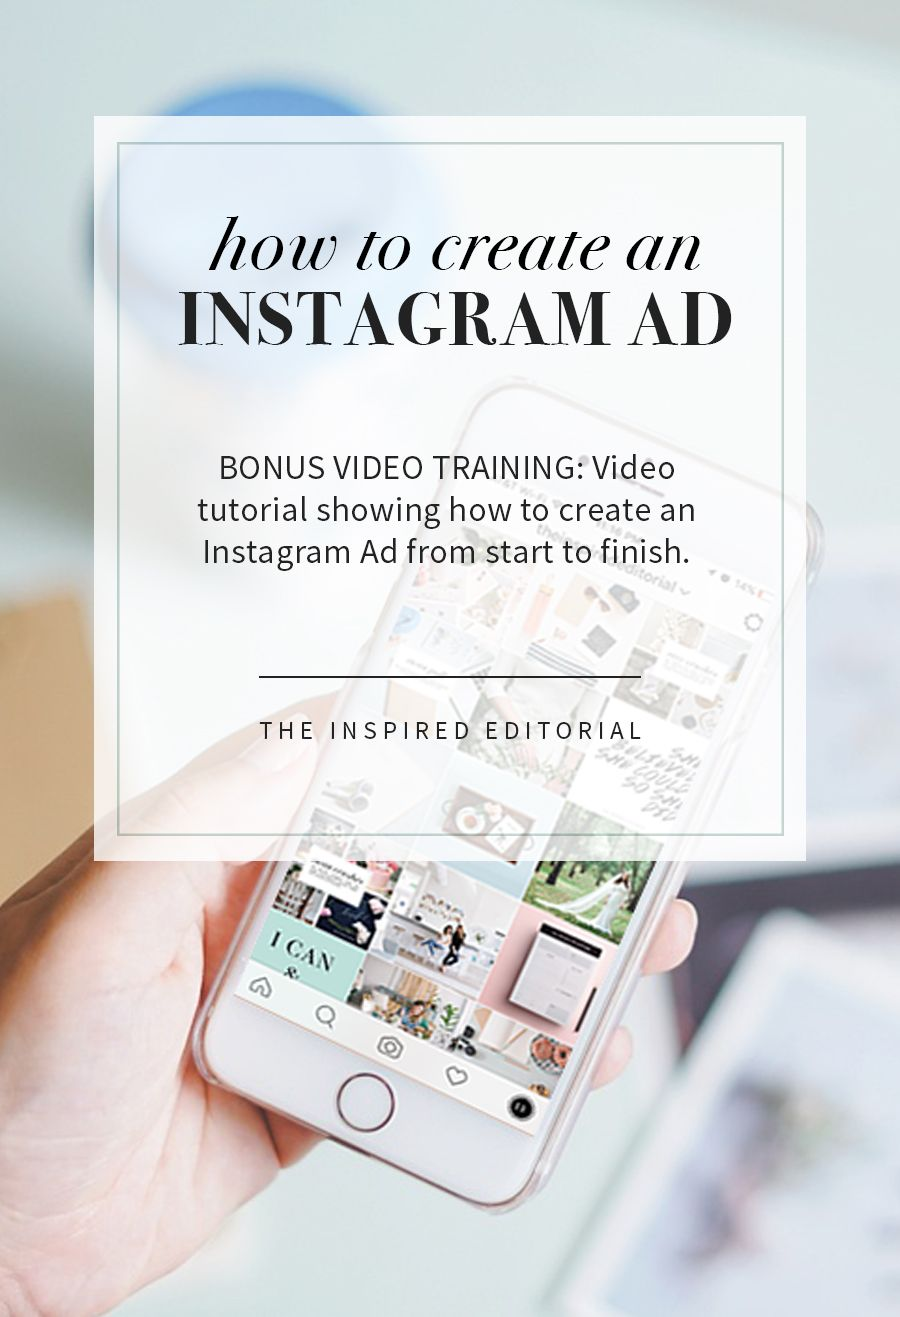 How To Make An Instagram Ad The Inspired Editorial Instagram Ads Instagram Marketing Instagram Marketing Tips